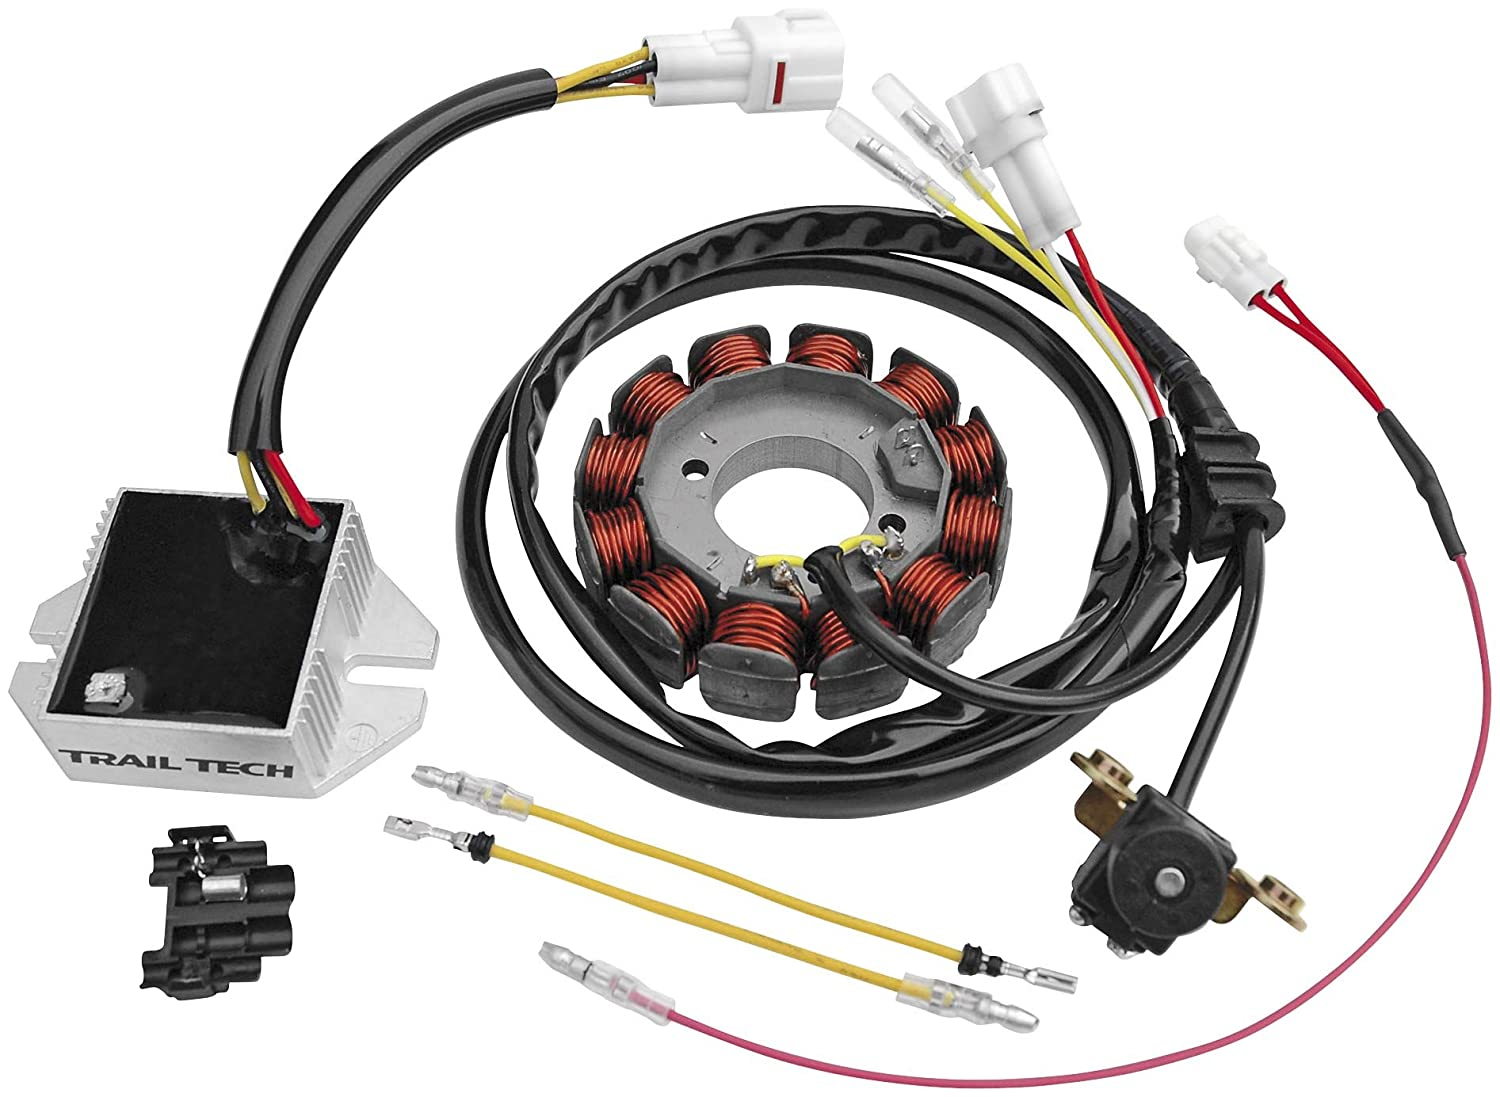 Trail Tech Complete Stator Kit for Yamaha YFZ450 YFZ-450 Z56-3058